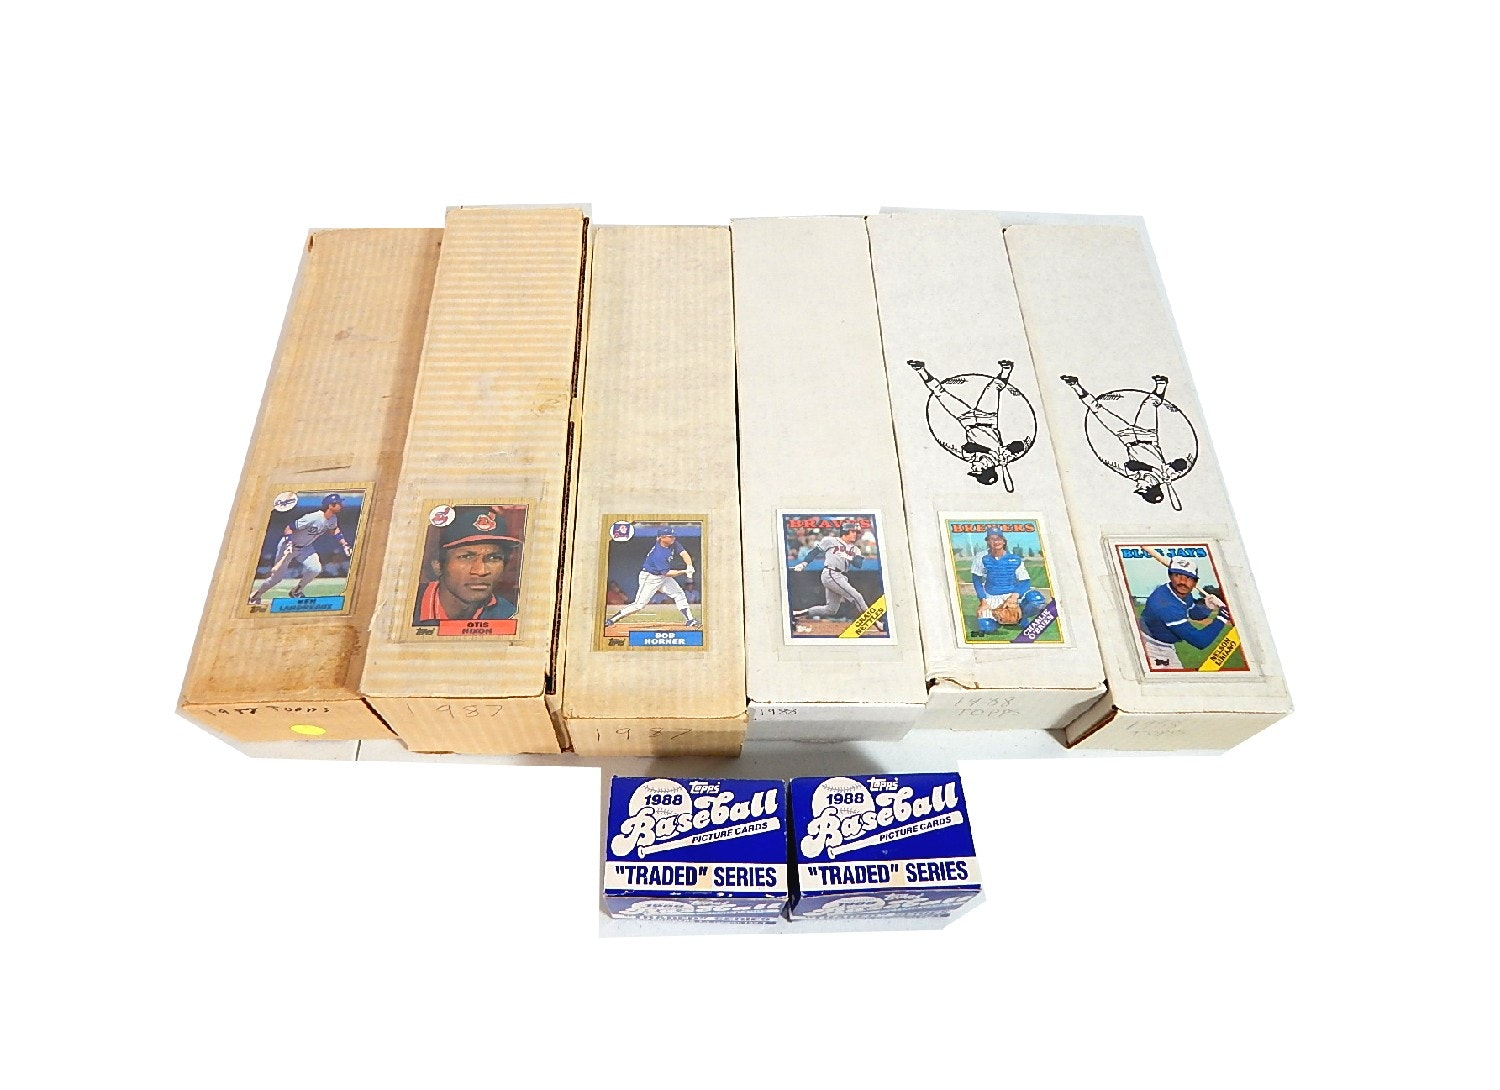 8 Complete Topps Baseball Card Sets from 1987 and 1988